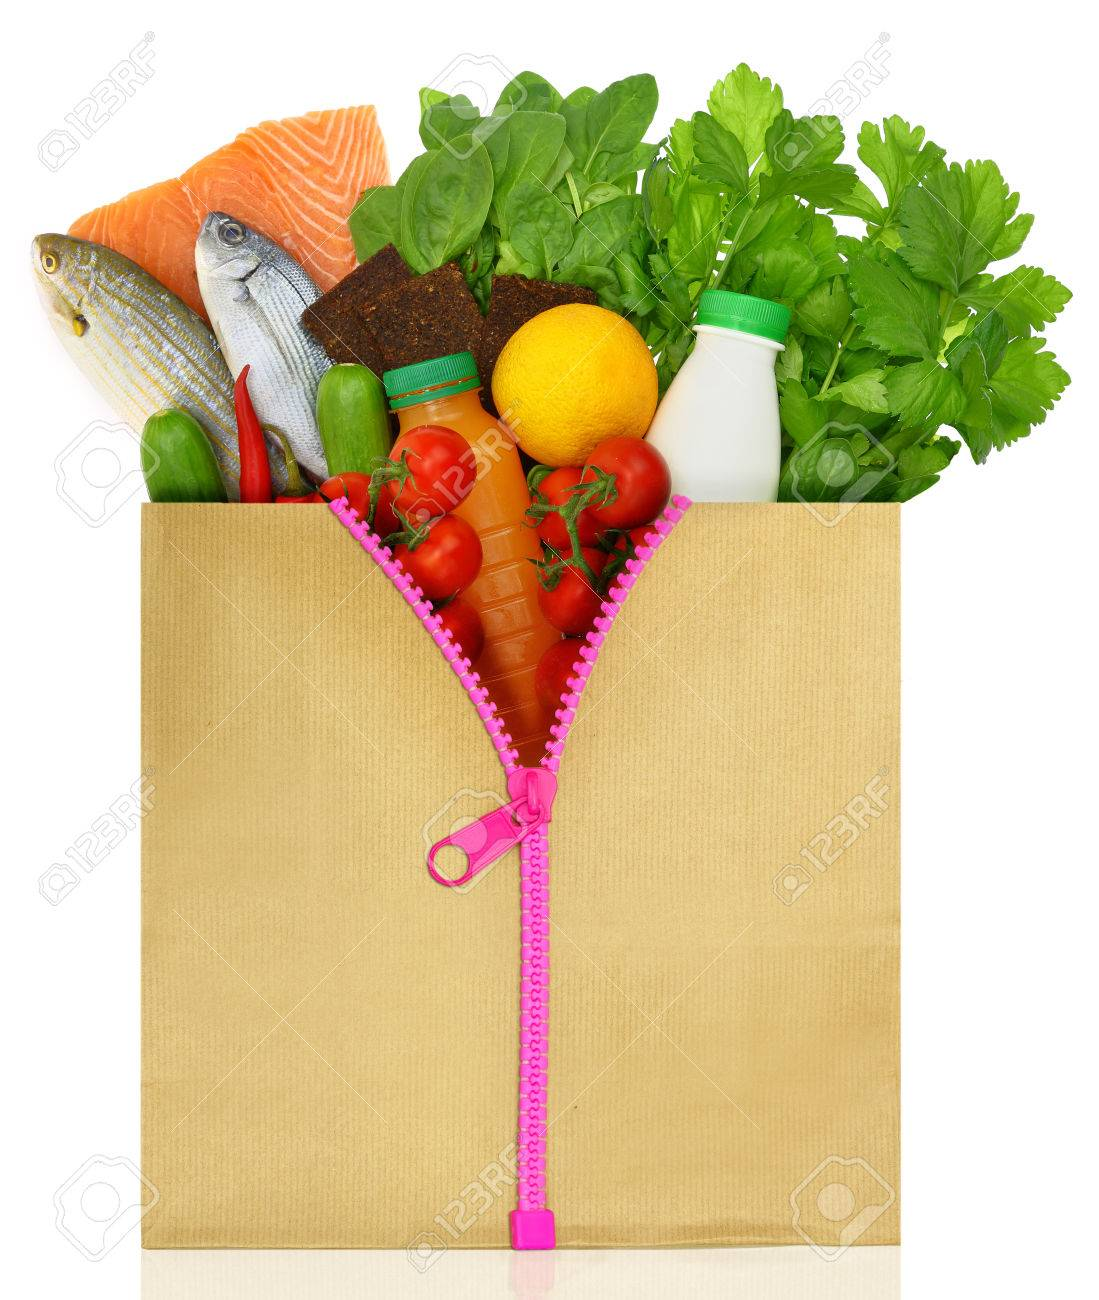 Unzipped shopping bag filled with groceries Stock Photo - 32264887